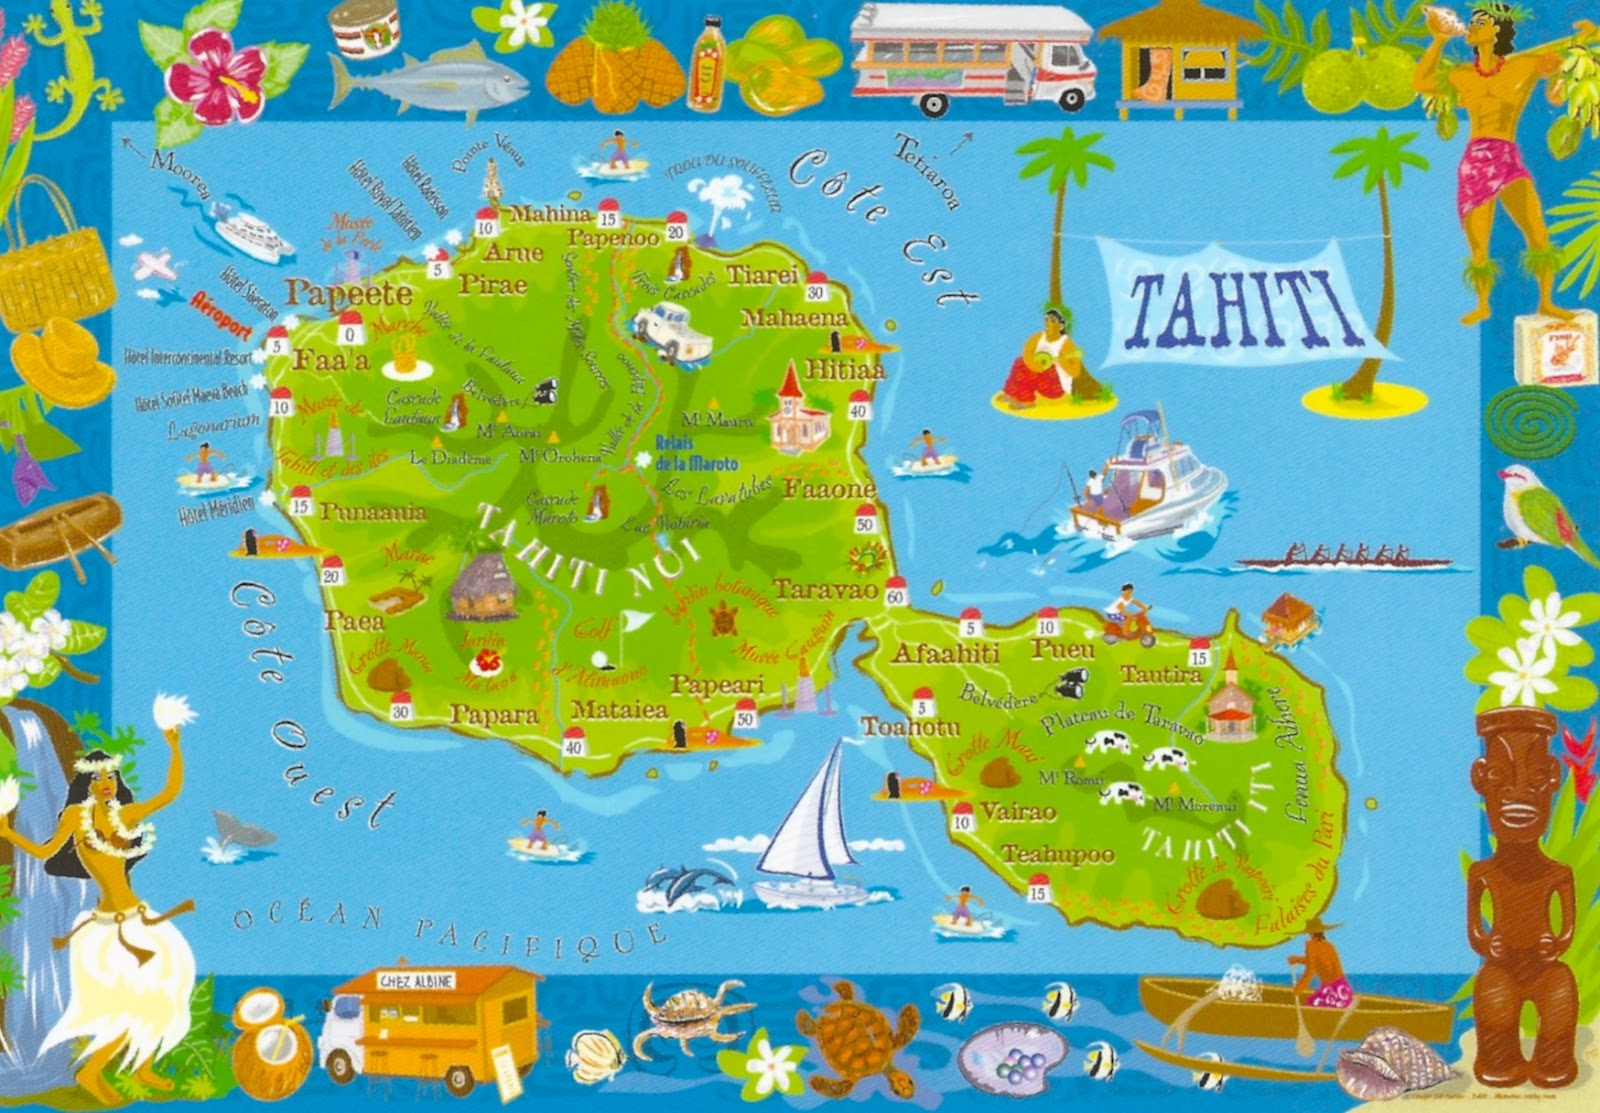 My favorite views french polynesia tahiti map of the island french polynesia tahiti map of the island gumiabroncs Image collections